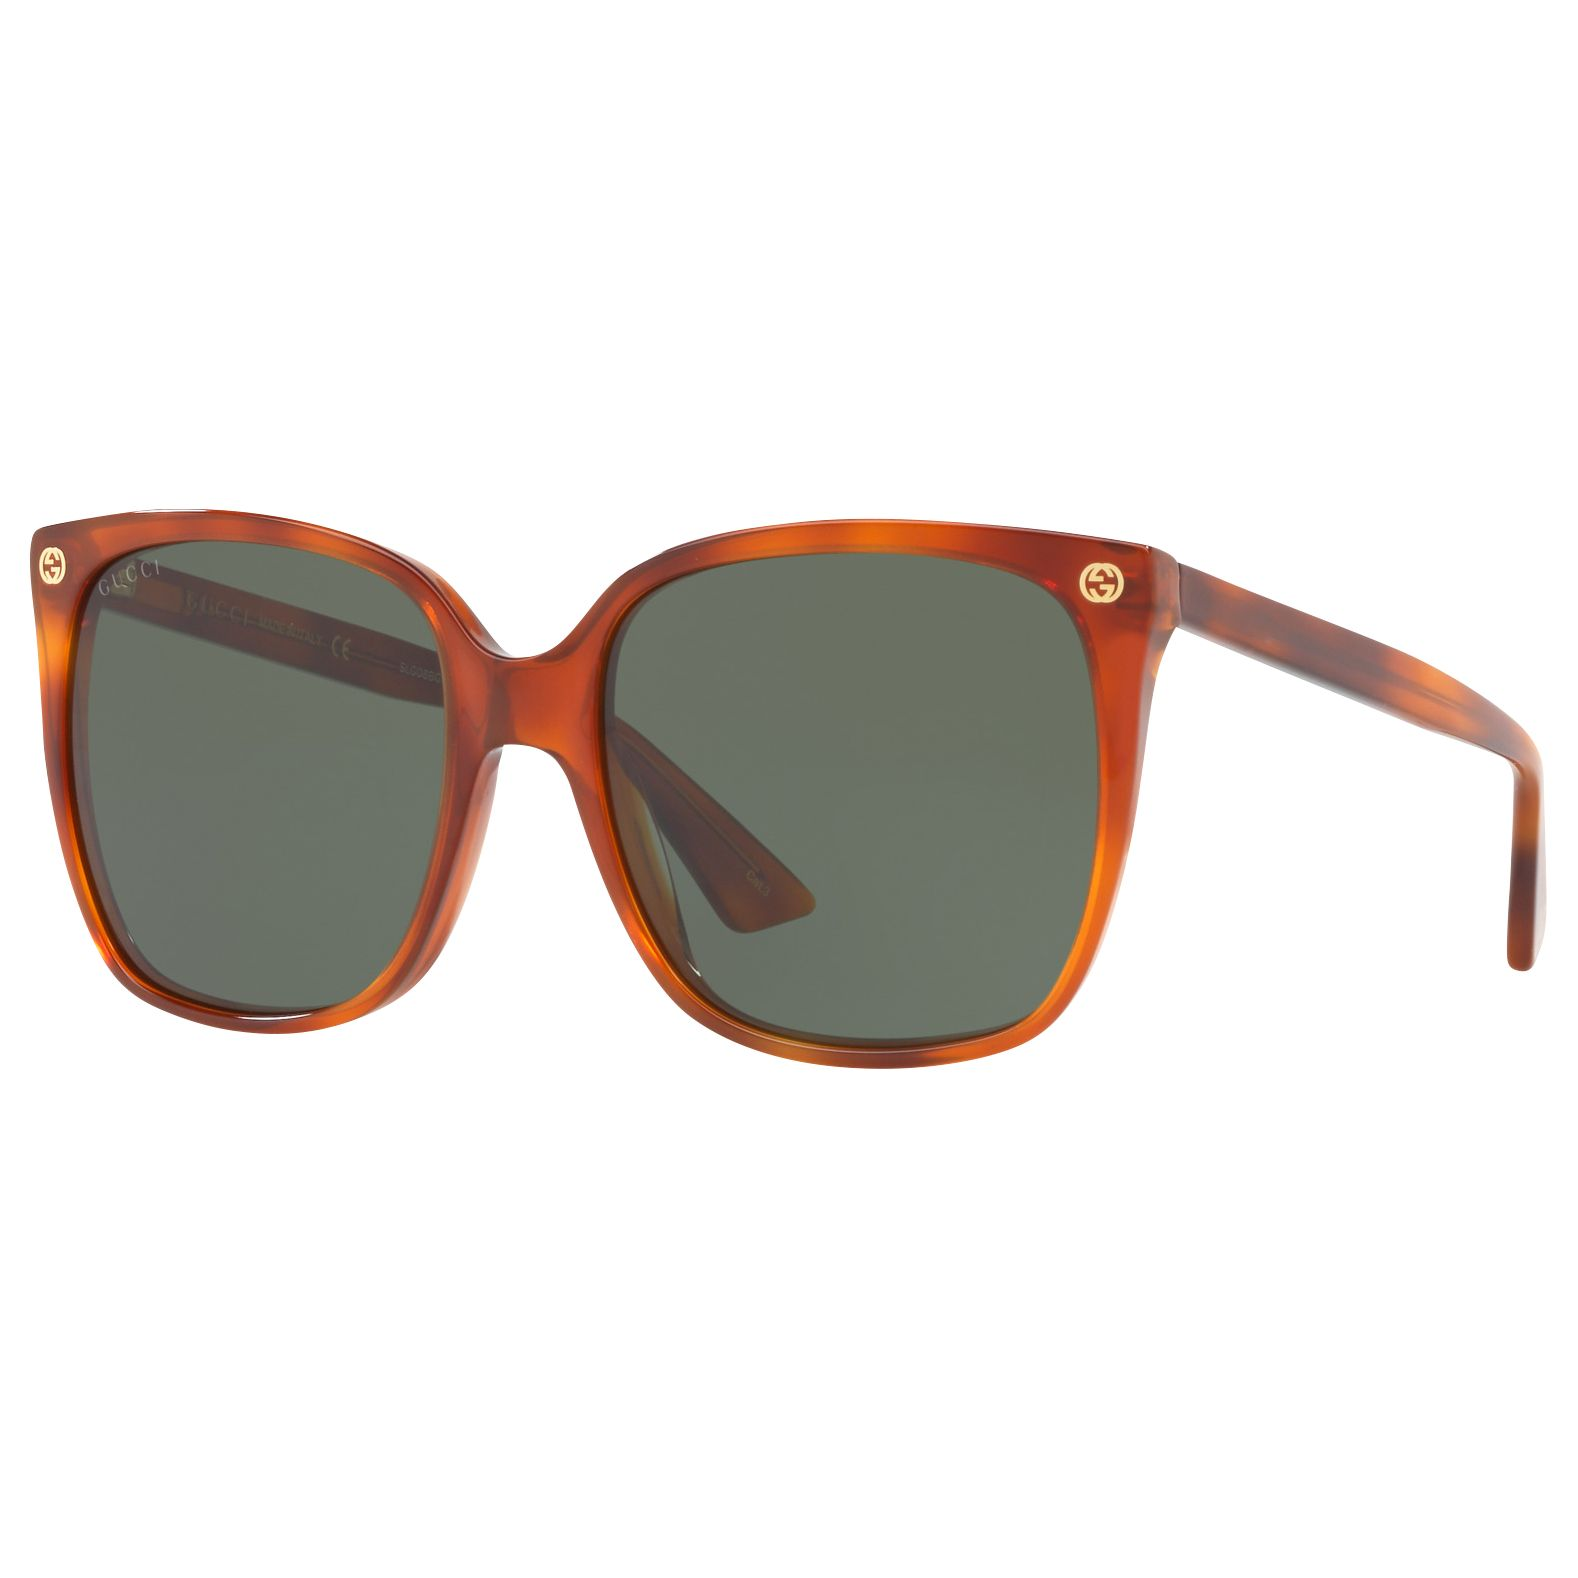 e3ef068d86 Gucci GG0022S Square Sunglasses at John Lewis   Partners